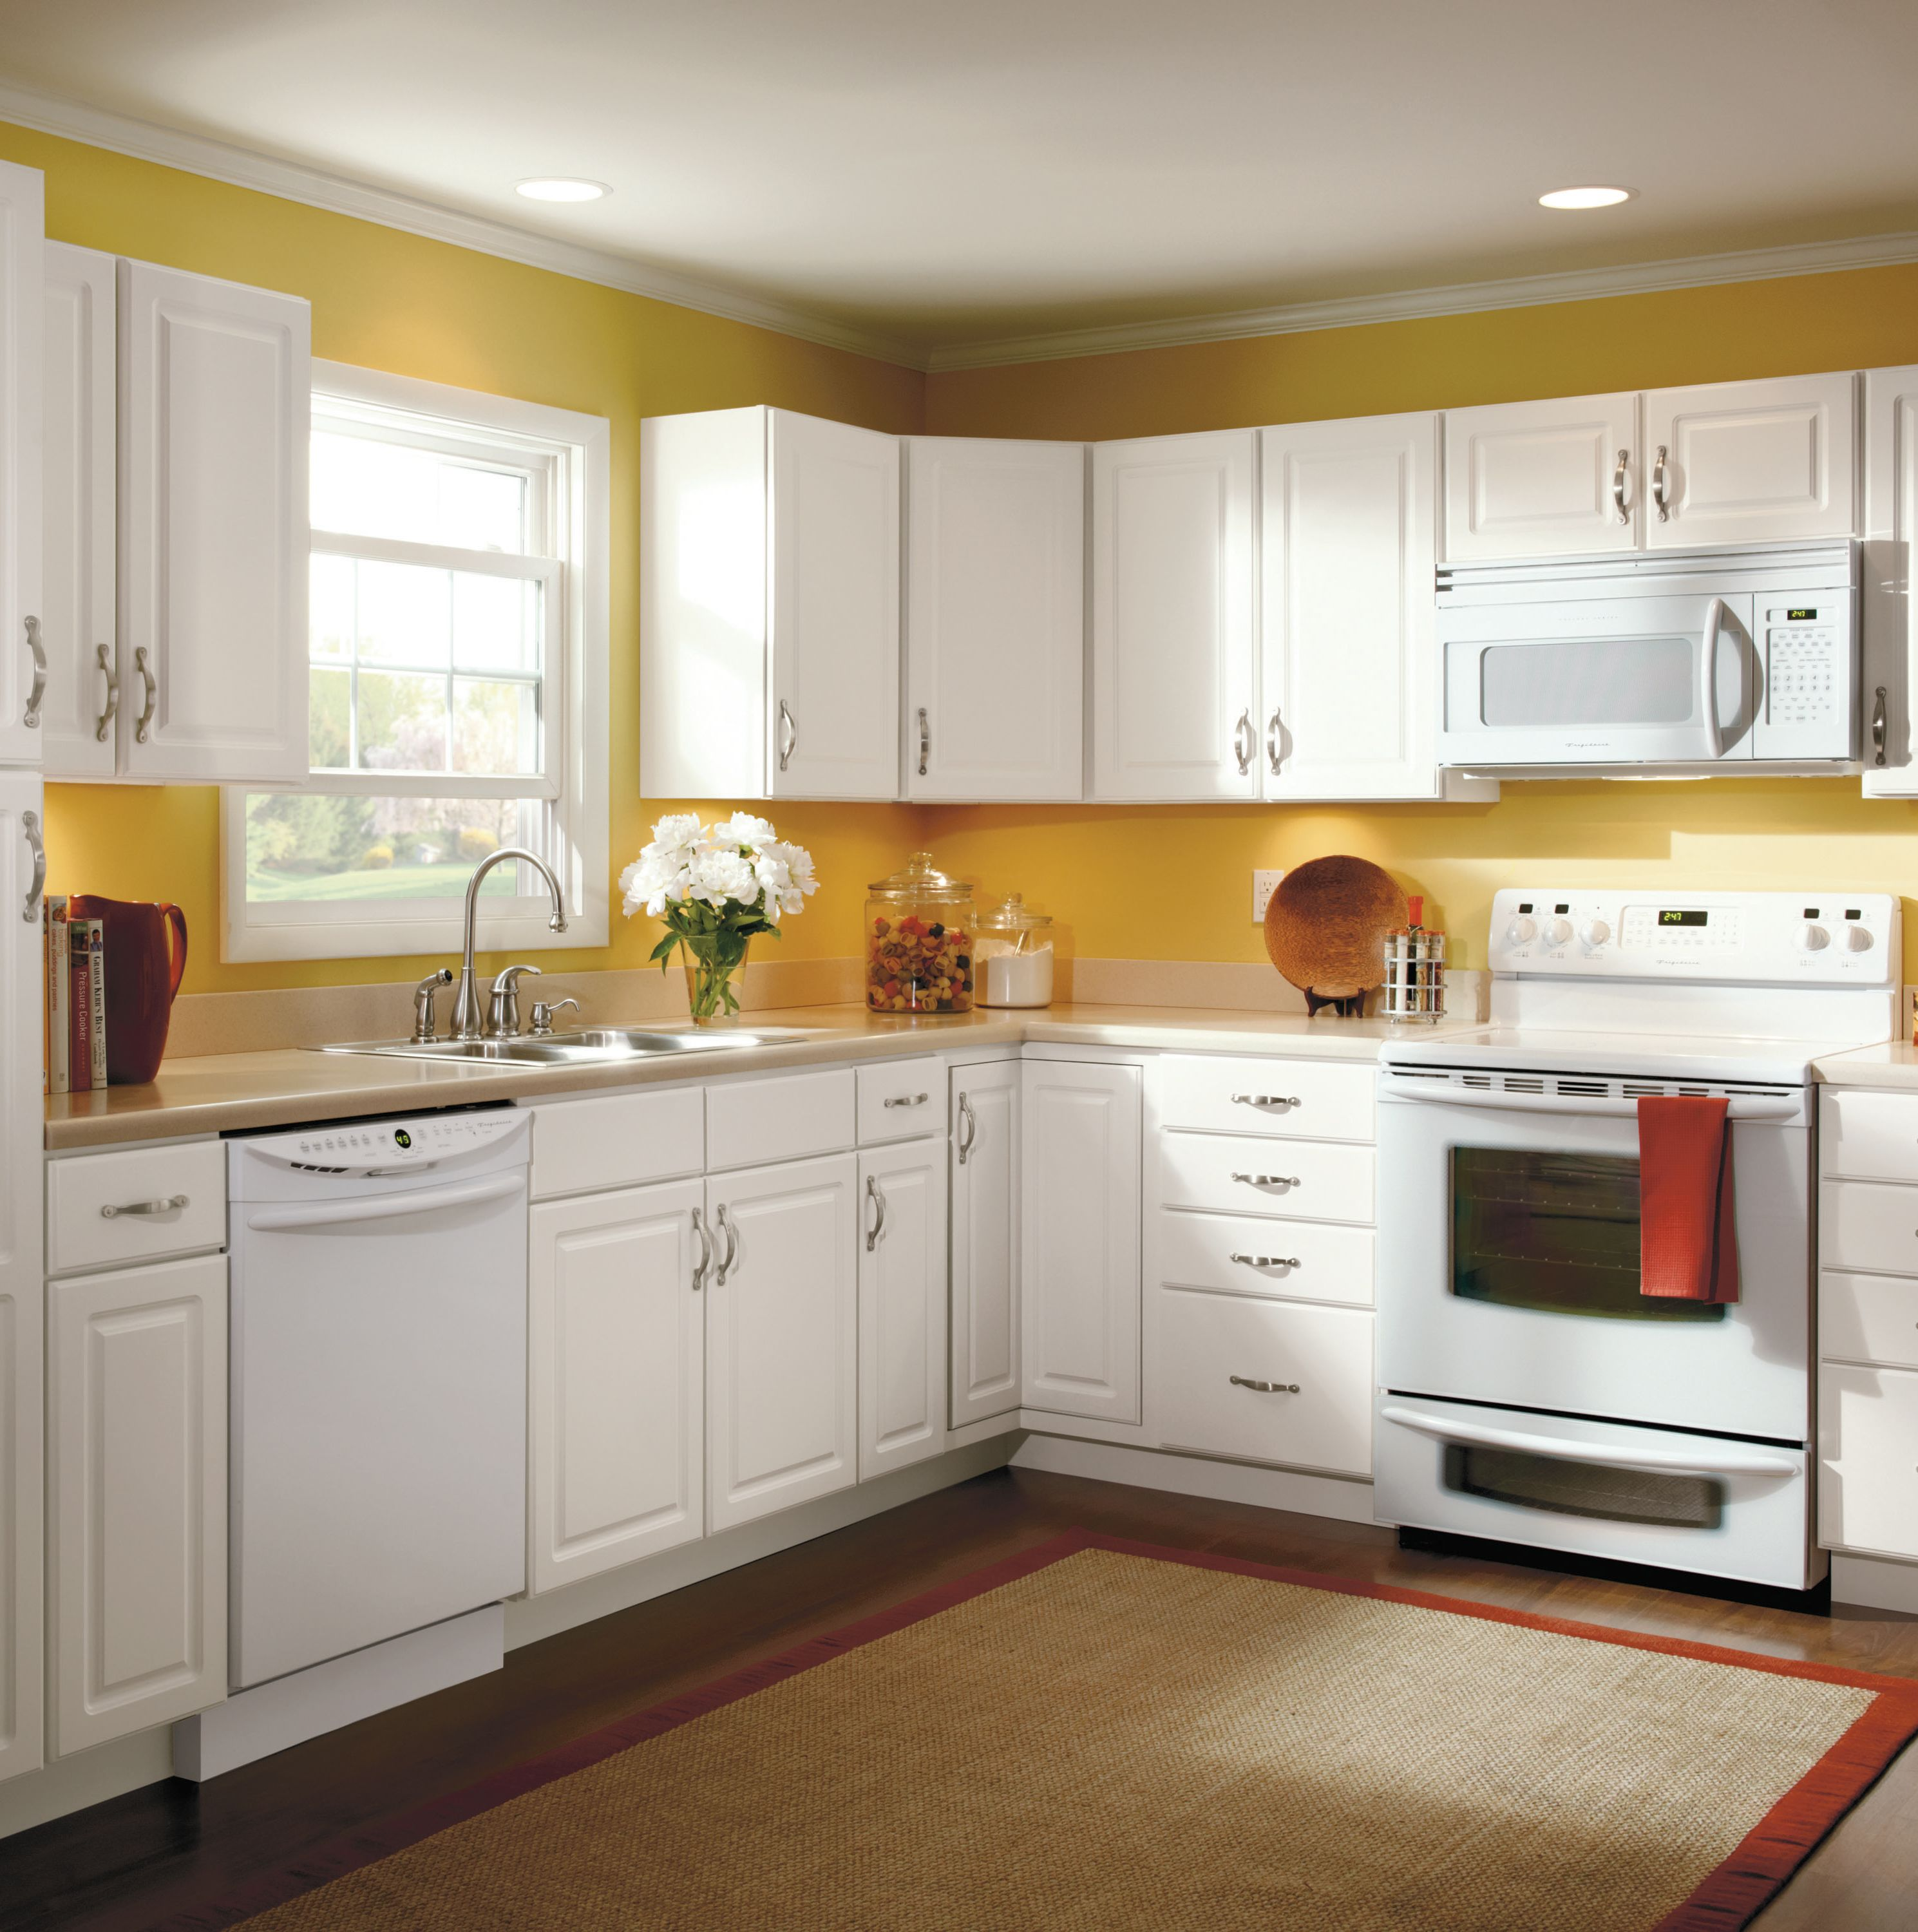 Best White Cabinets Always Make A Kitchen Feel Bright And 400 x 300